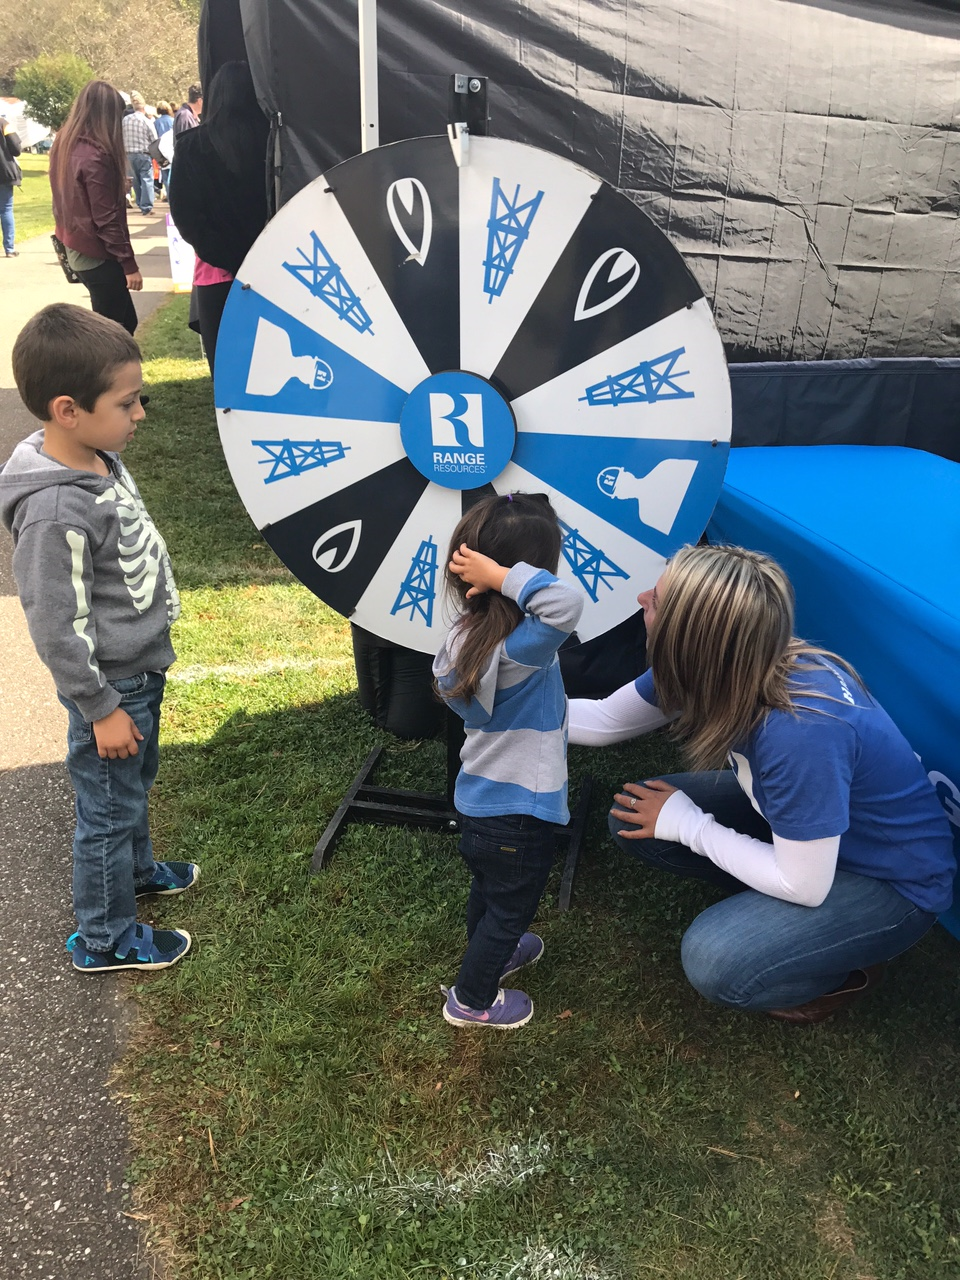 Range Resources is also a regular supporter of the annual Cecil Township Fall Festival